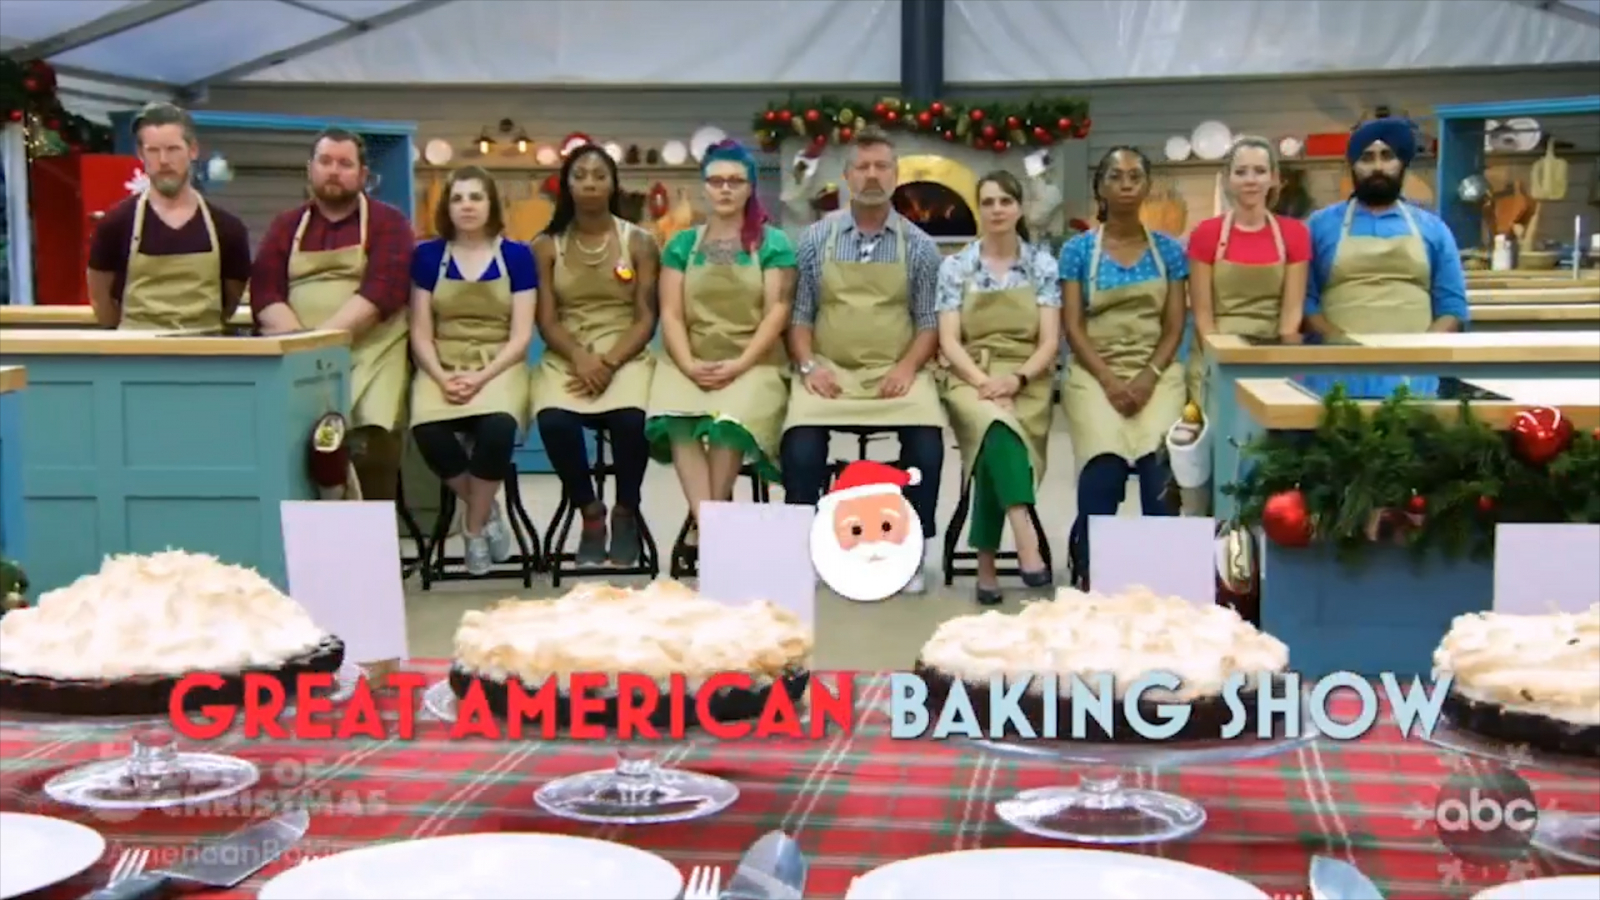 where is the great american baking show holiday edition 2018 filmed